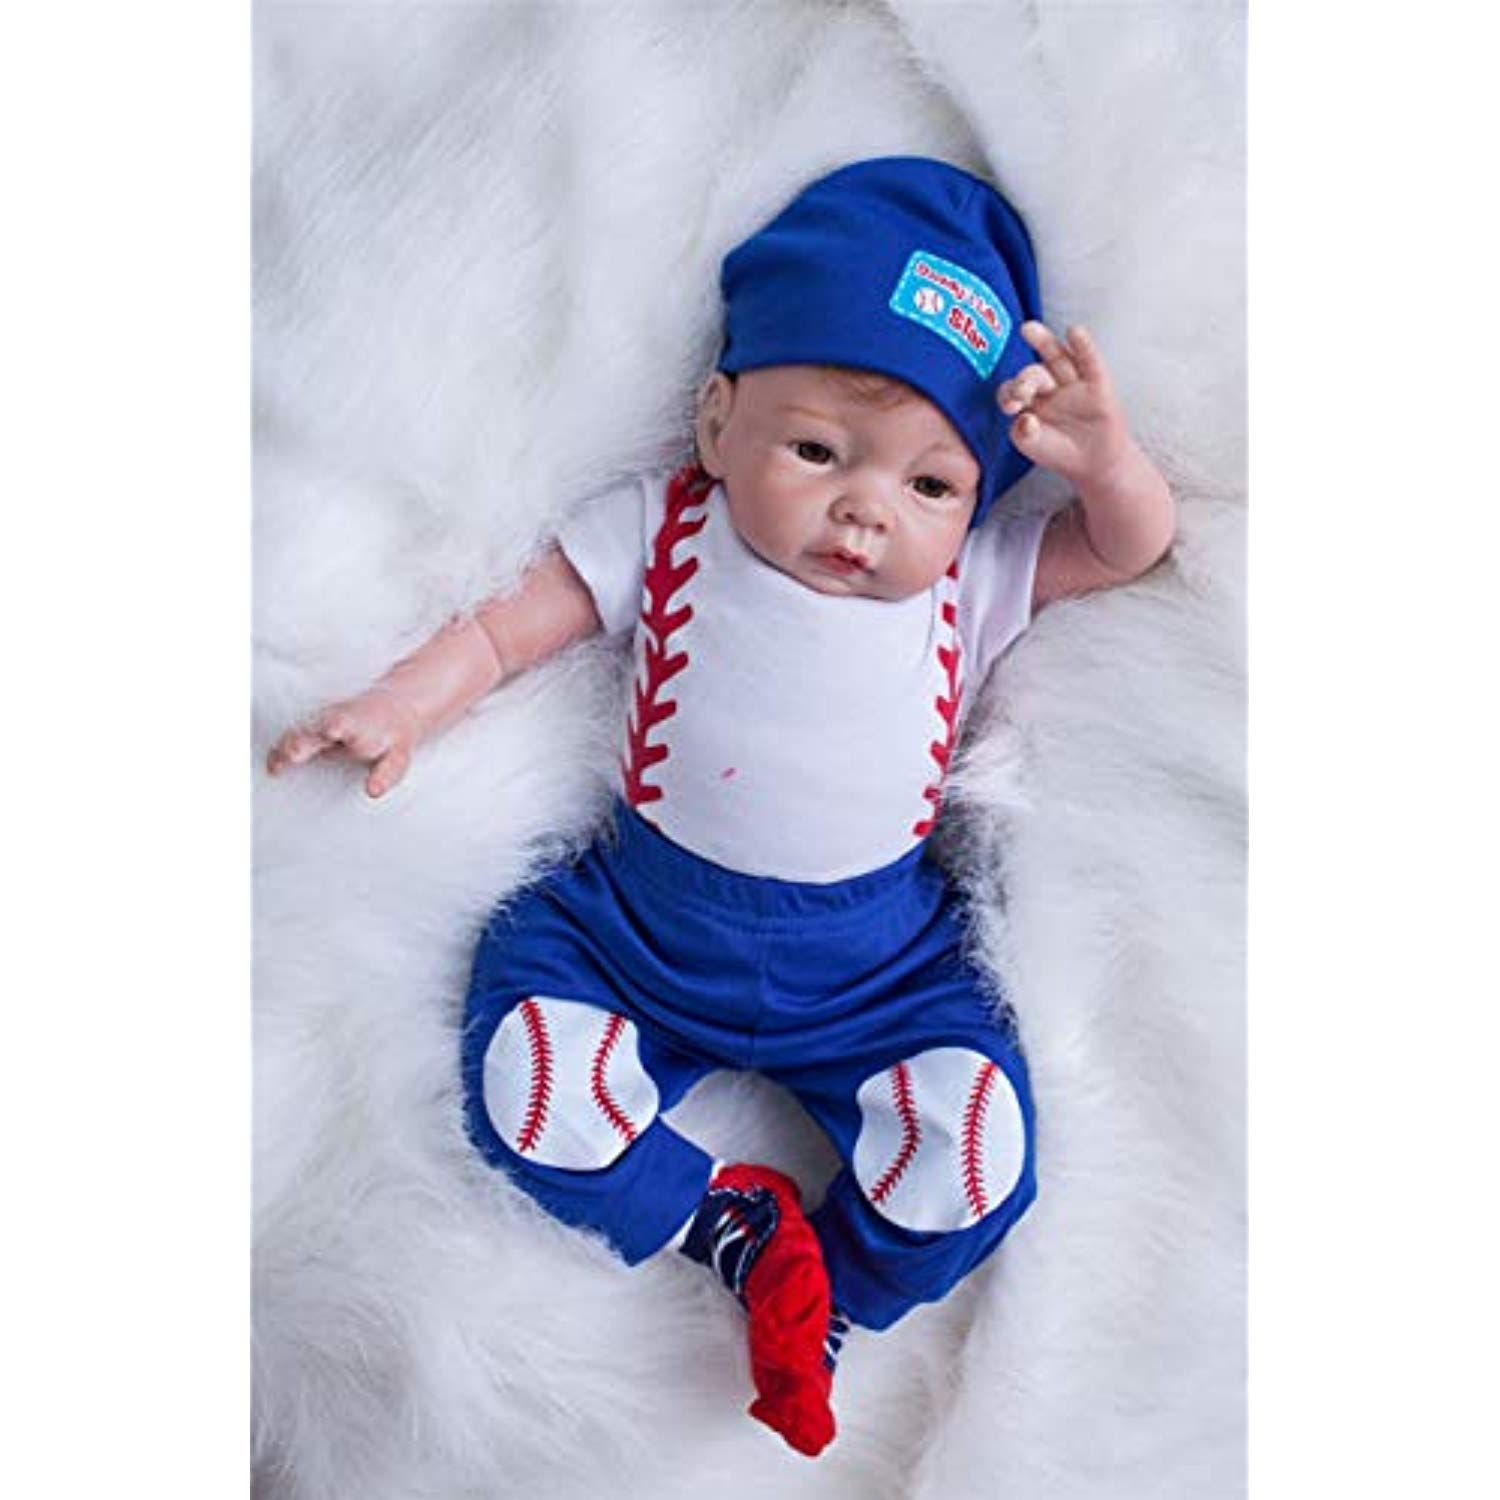 """iCradle Reborn Toddler 24/"""" Realistic Silicone Reborn Baby Dolls Boy with Outfit"""